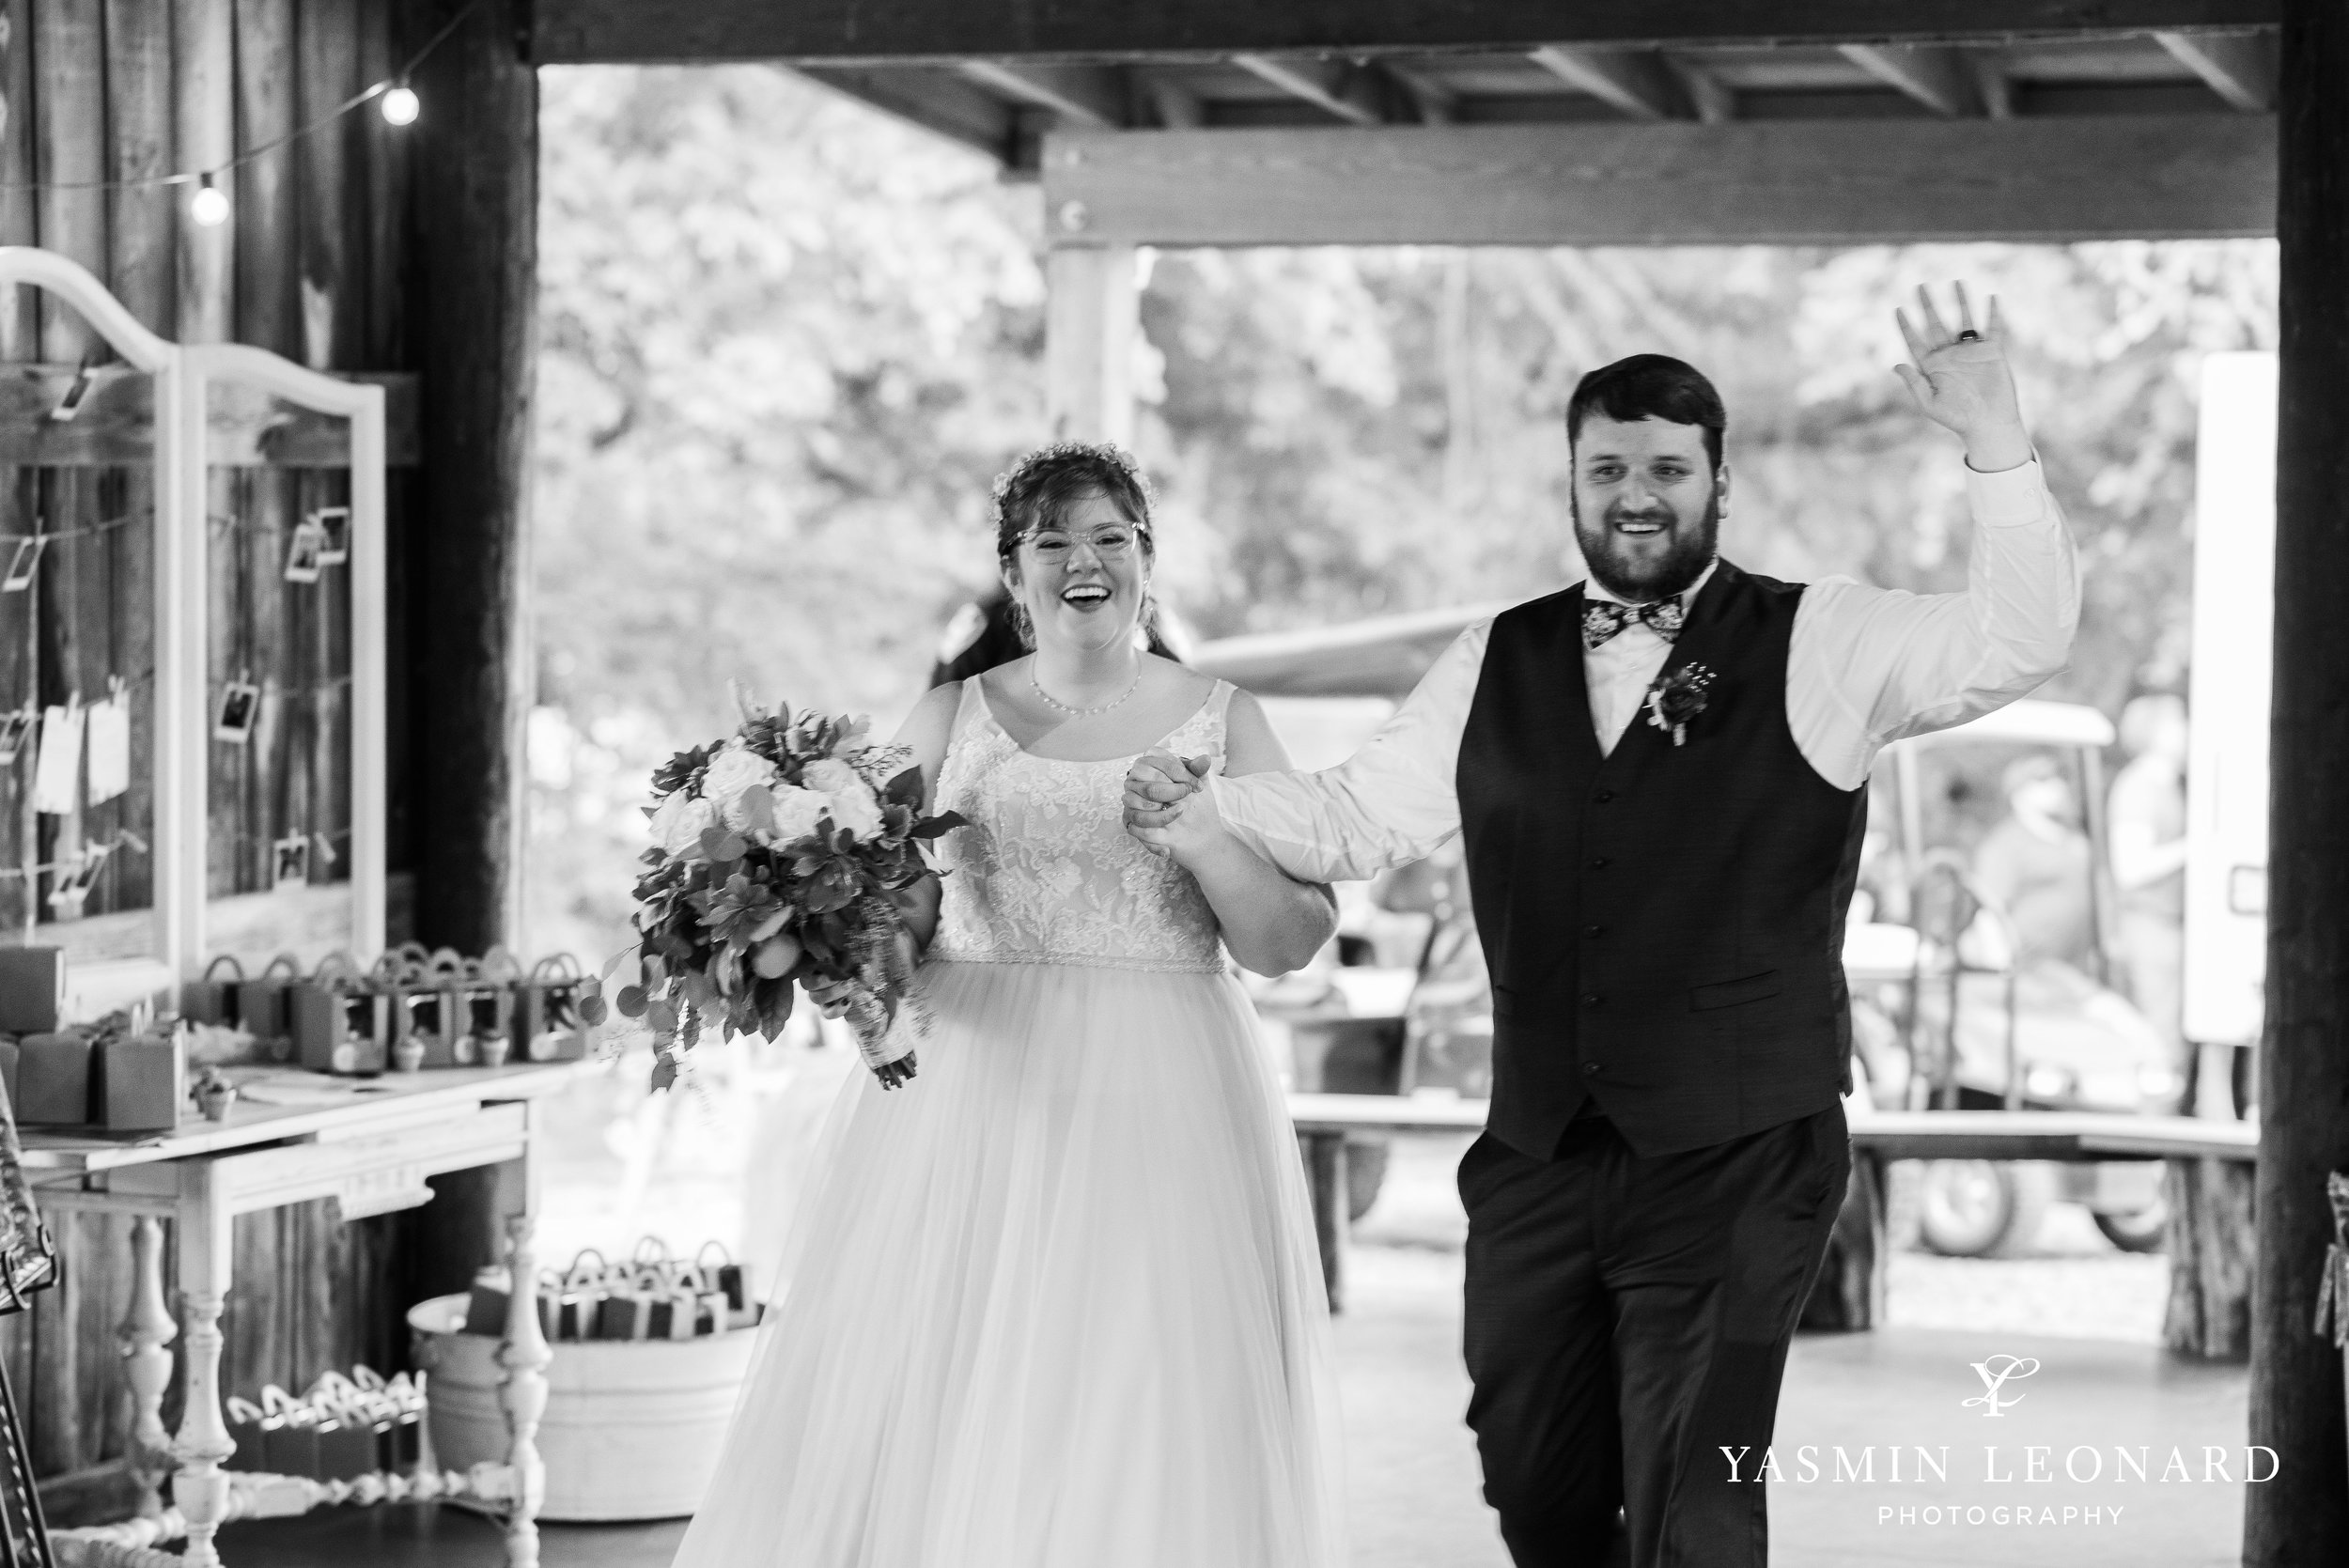 Hannah and David - l'abri at Linwood - NC Barn Weddings - Guys and Girls on Bride's Side - How to incorporate guys with bridesmaids - navy fall wedding - high point photographer - nc wedding venues - triad weddings-39.jpg